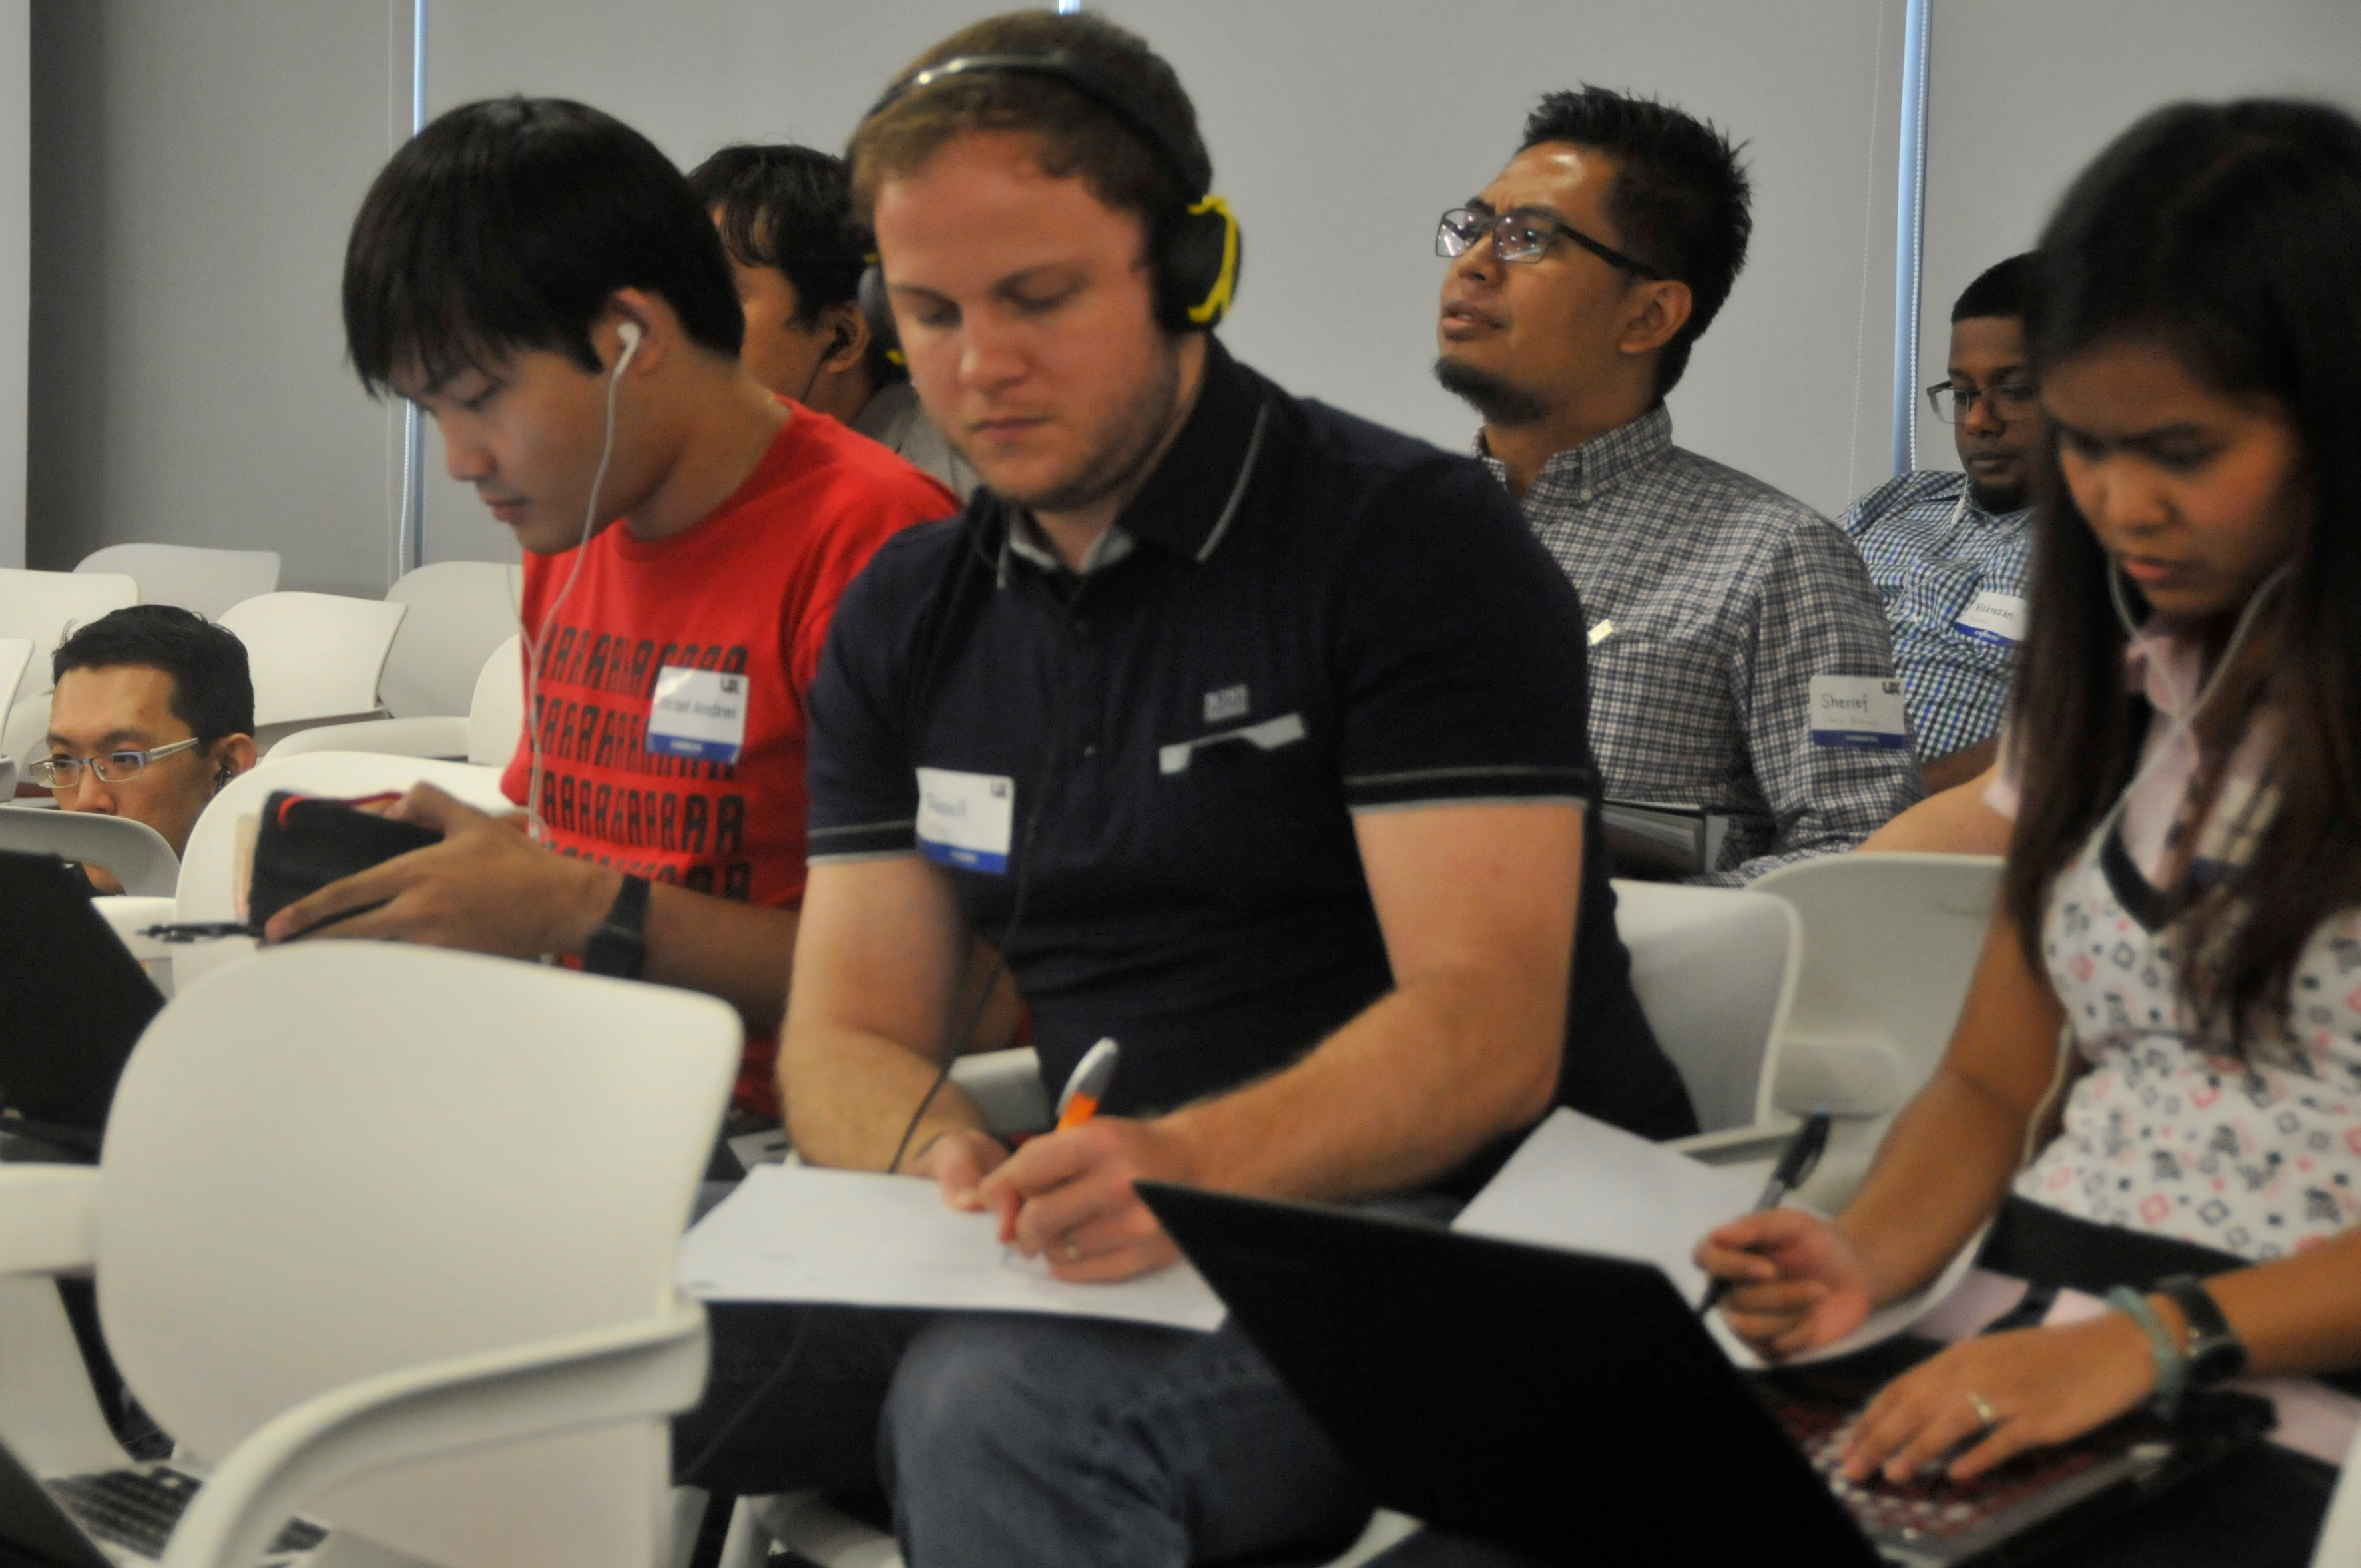 UX Malaysia 2013 - Analysis of Remote Usability Testing in action!